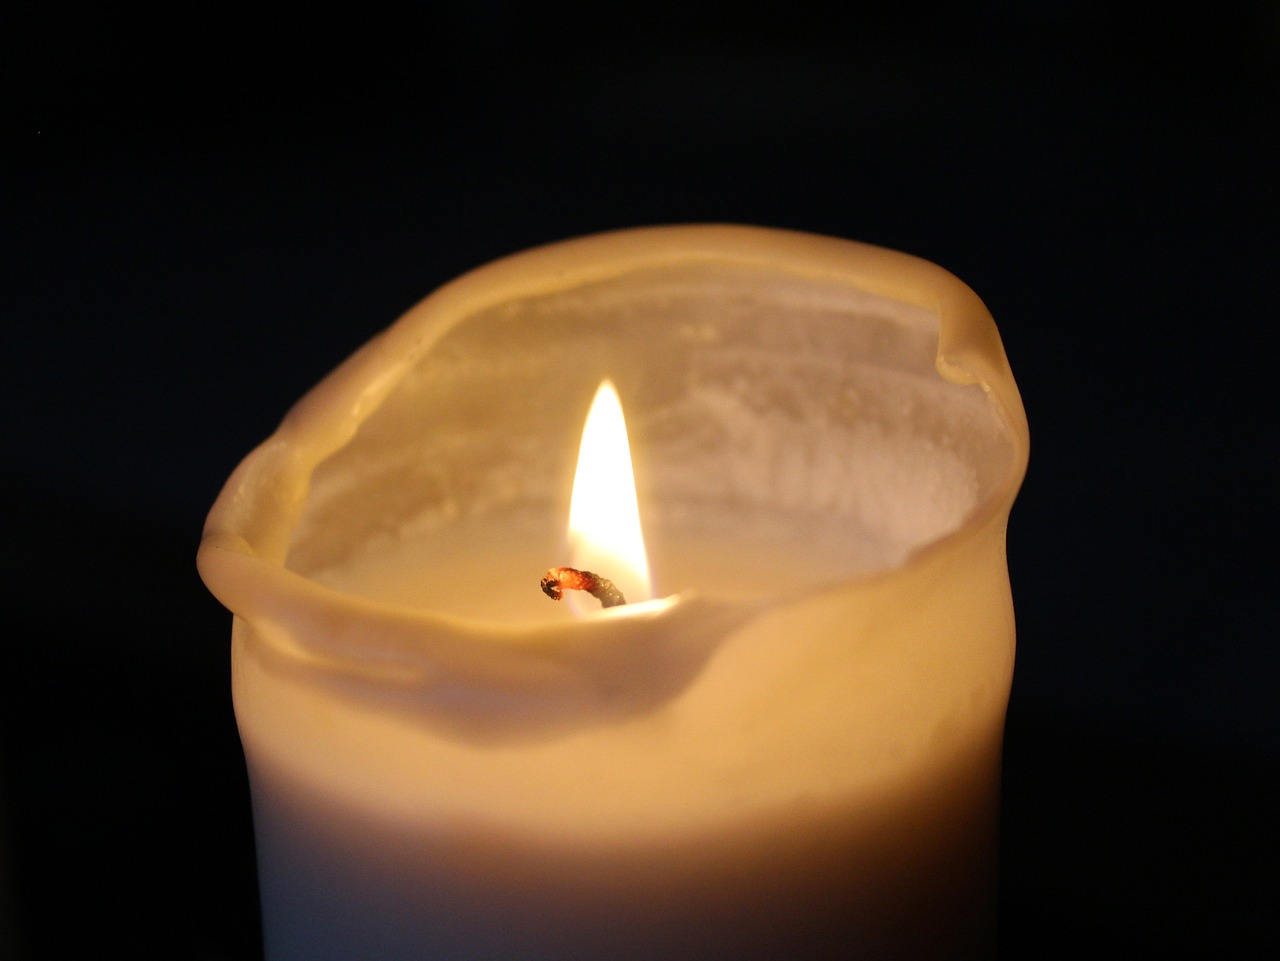 FREE candle Stock Photos from PikWizard